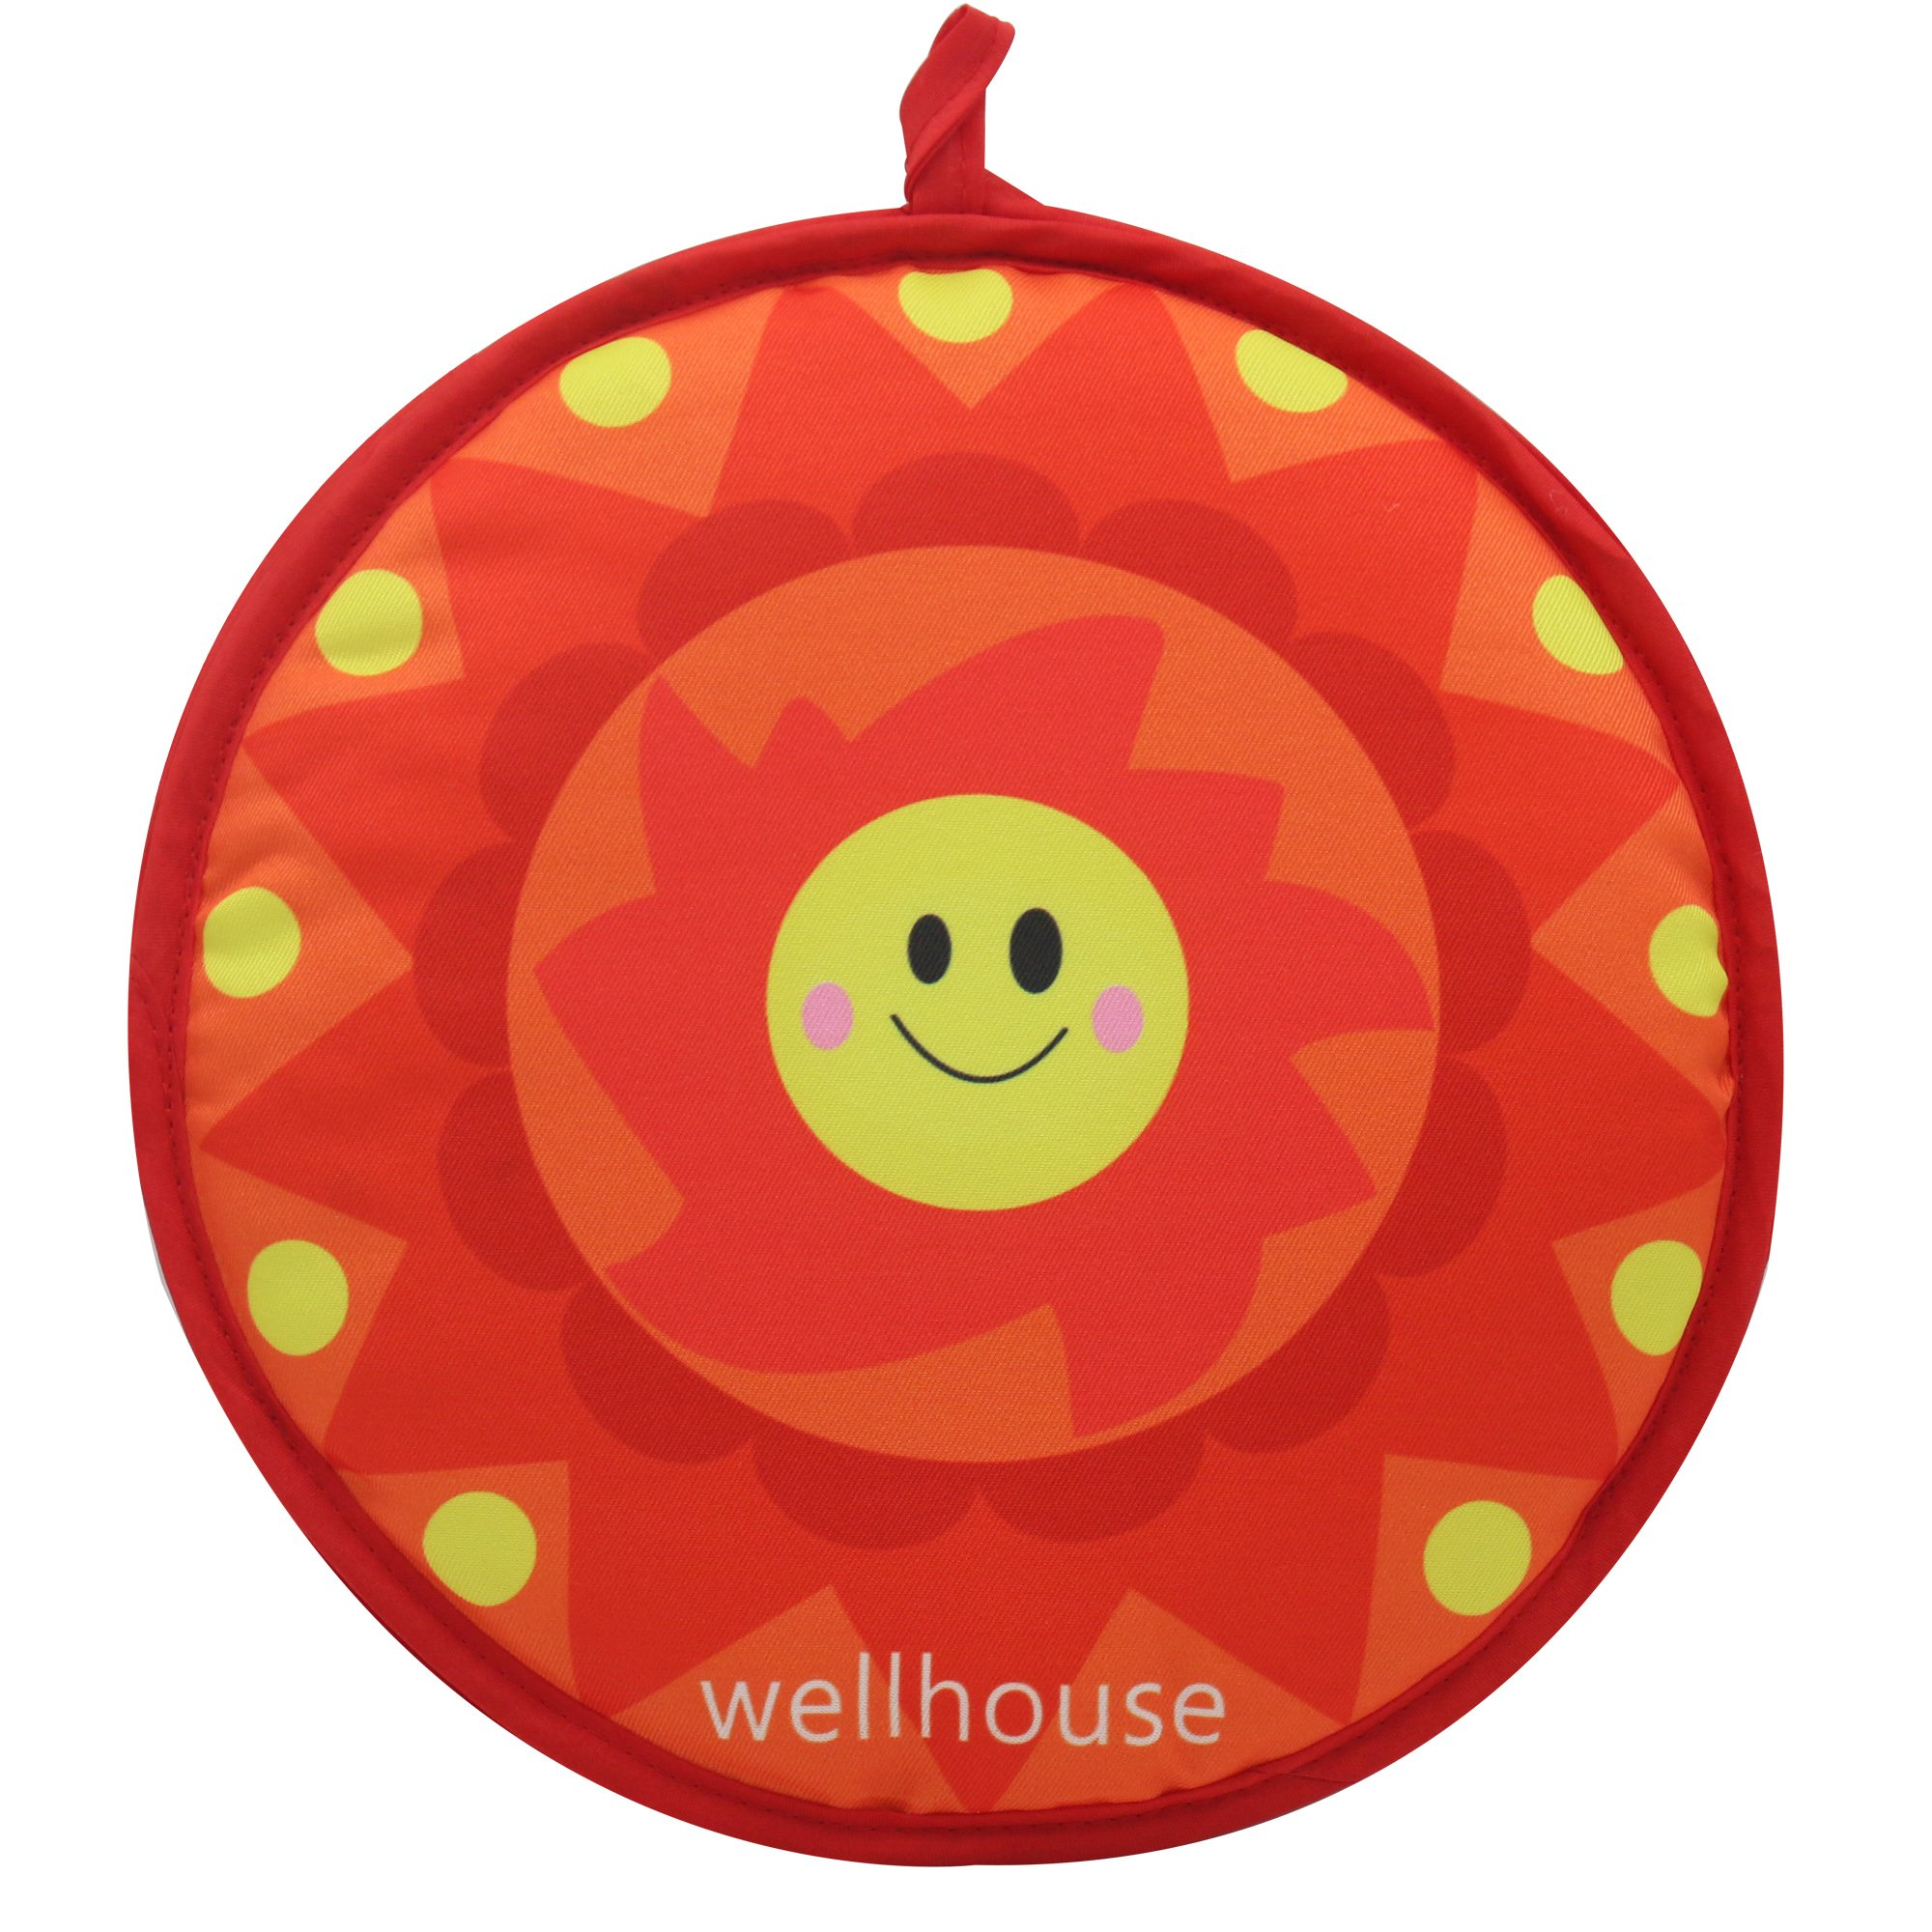 wellhouse Tortilla Warmer 12 Inch Insulated Microwave-Safe Fabric Pouch to Keep Warm for up to 1 hour(TW-sun) by wellhouse